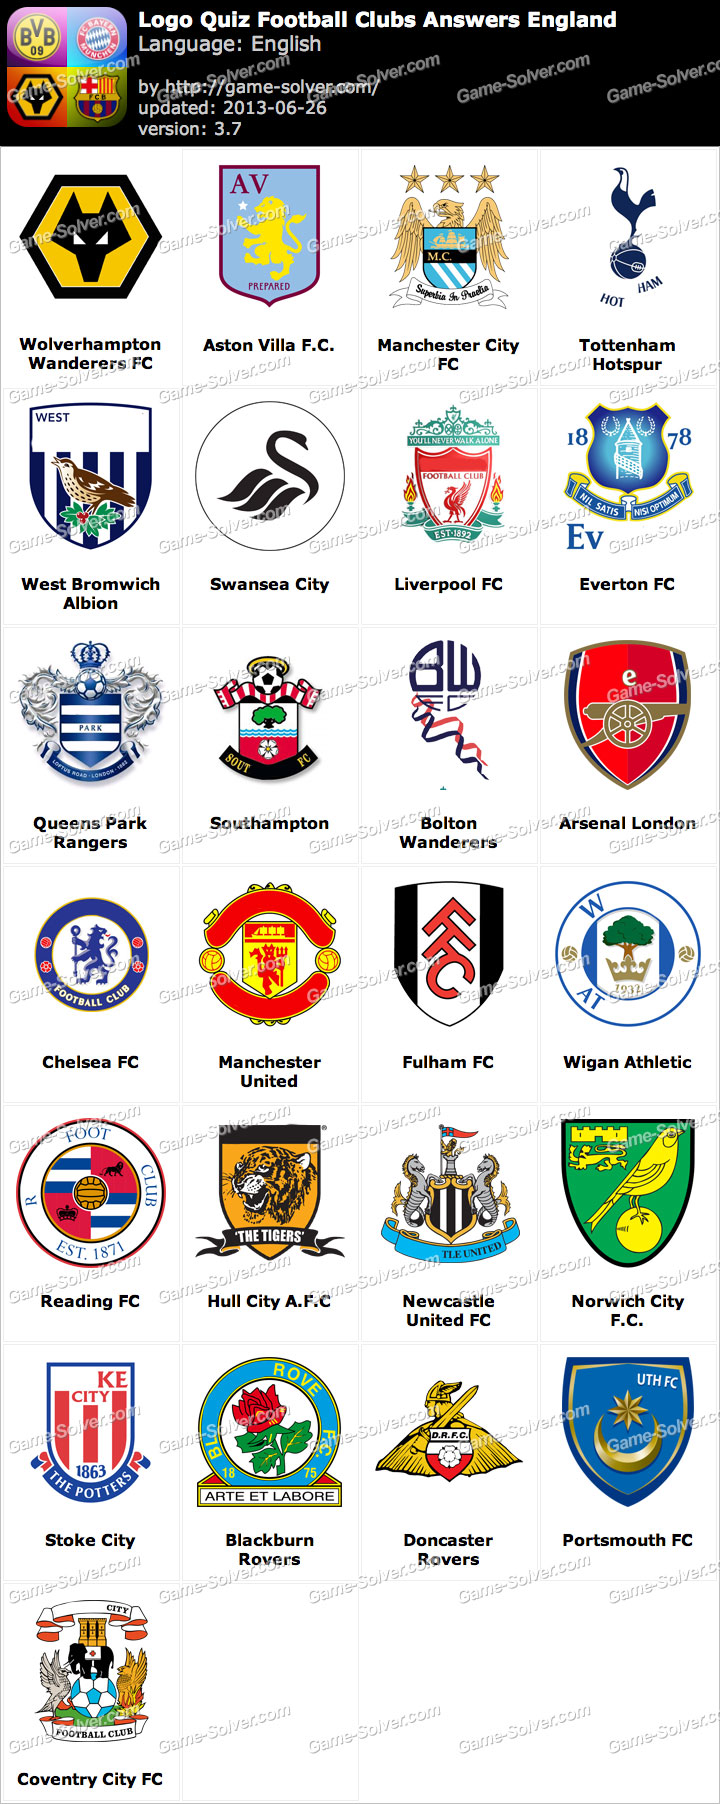 Logo Quiz Football Clubs Answers England